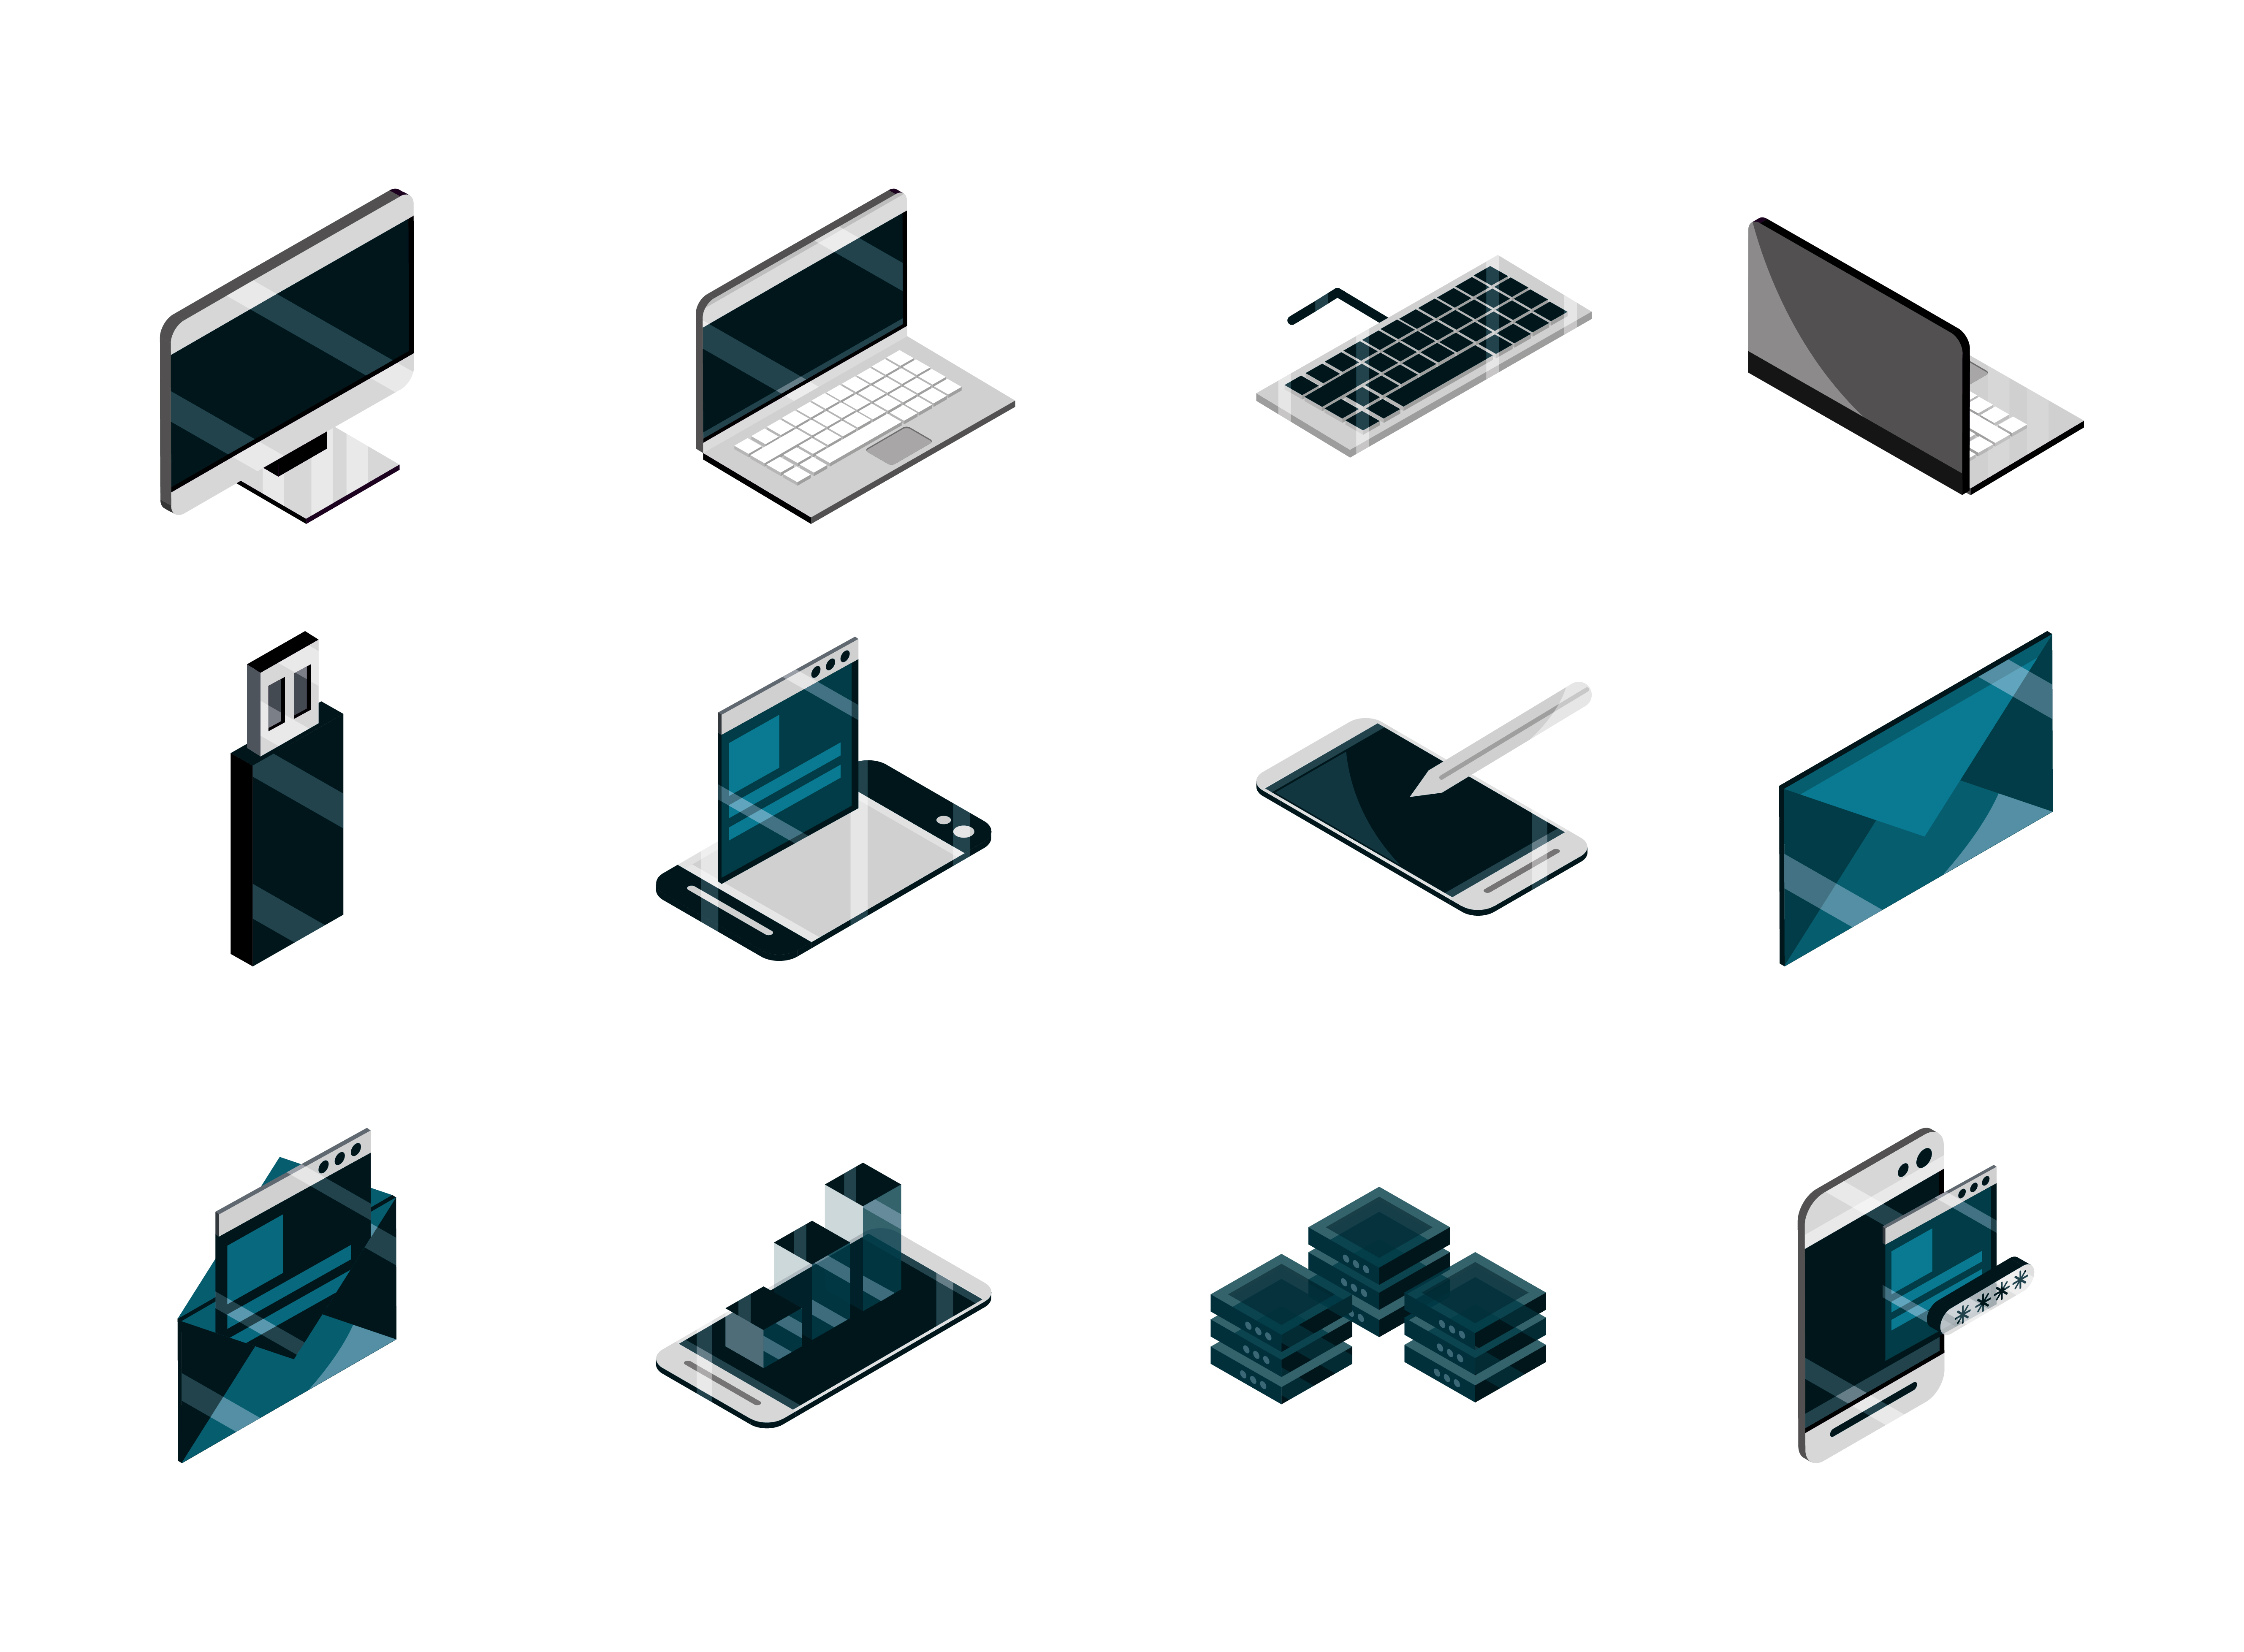 Tech and digital isometric icon set vector